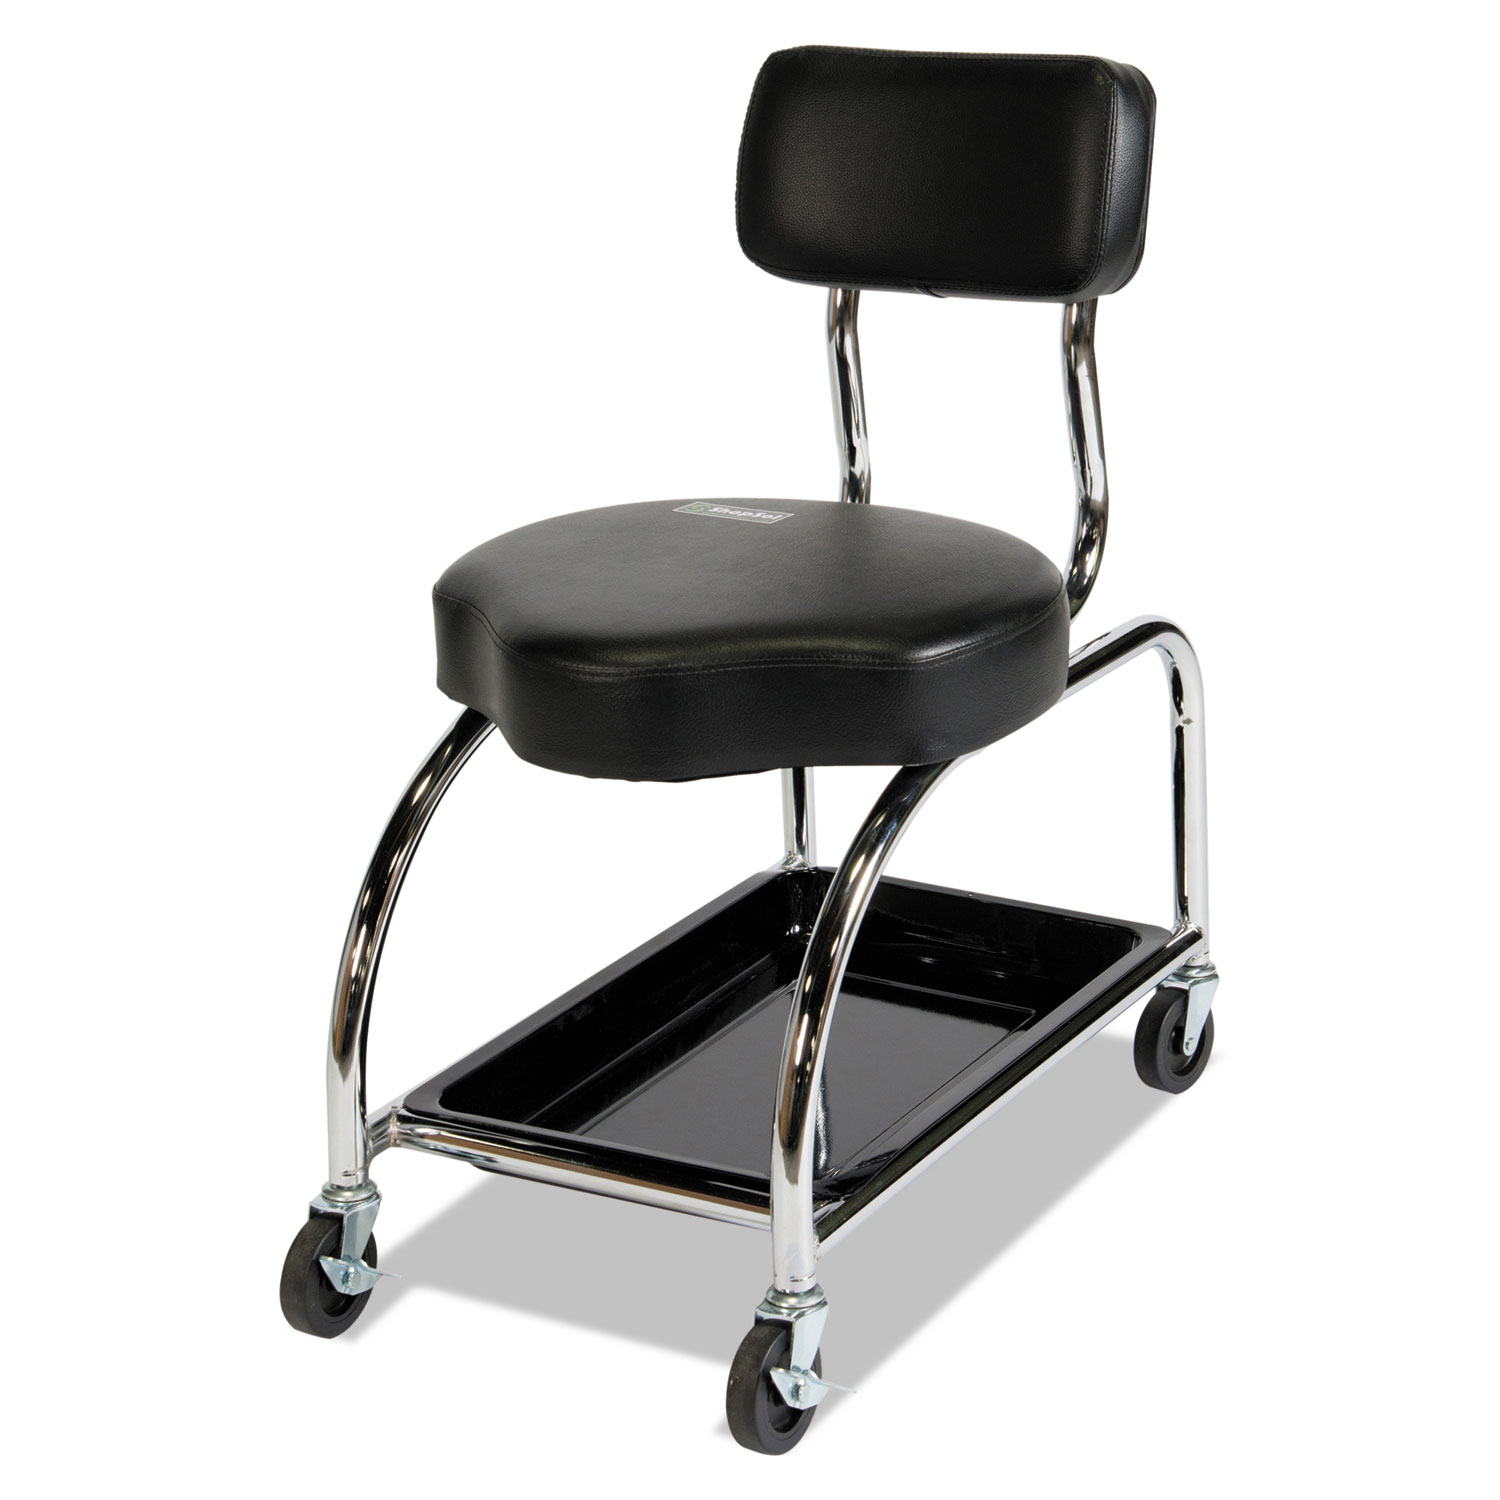 Tremendous Heavy Duty Tool Trolley 18 Seat Height Supports Up To 450 Lbs Black Seat Black Back Chrome Base Ibusinesslaw Wood Chair Design Ideas Ibusinesslaworg